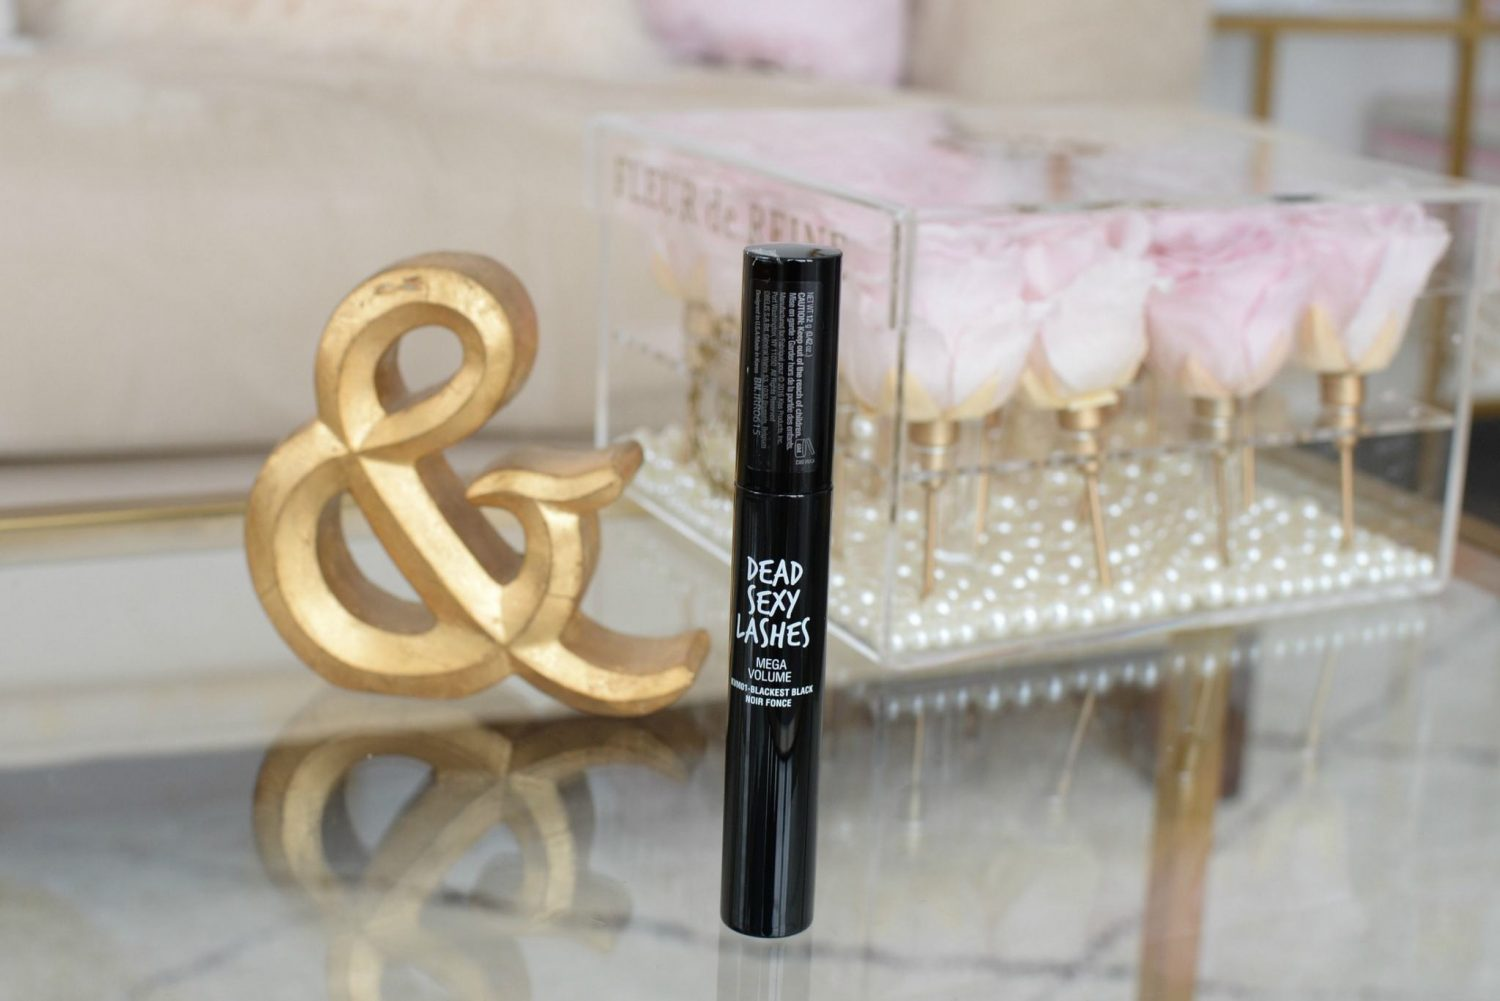 Kiss New York Professional Dead Sexy Lashes Mega Volume Mascara | The Pink Millennial